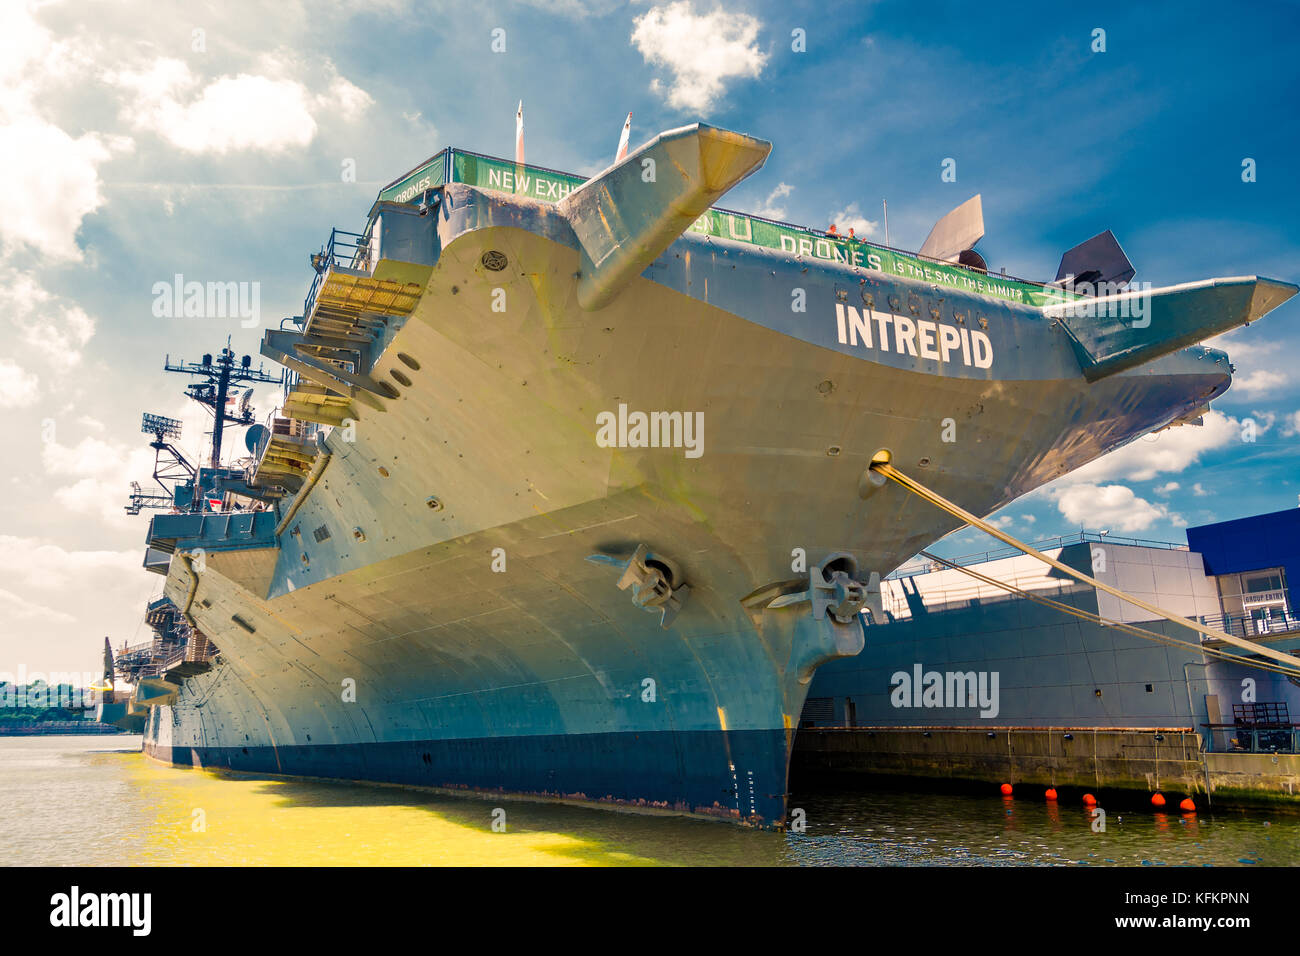 Uss Intrepid Stock Photos & Uss Intrepid Stock Images - Alamy